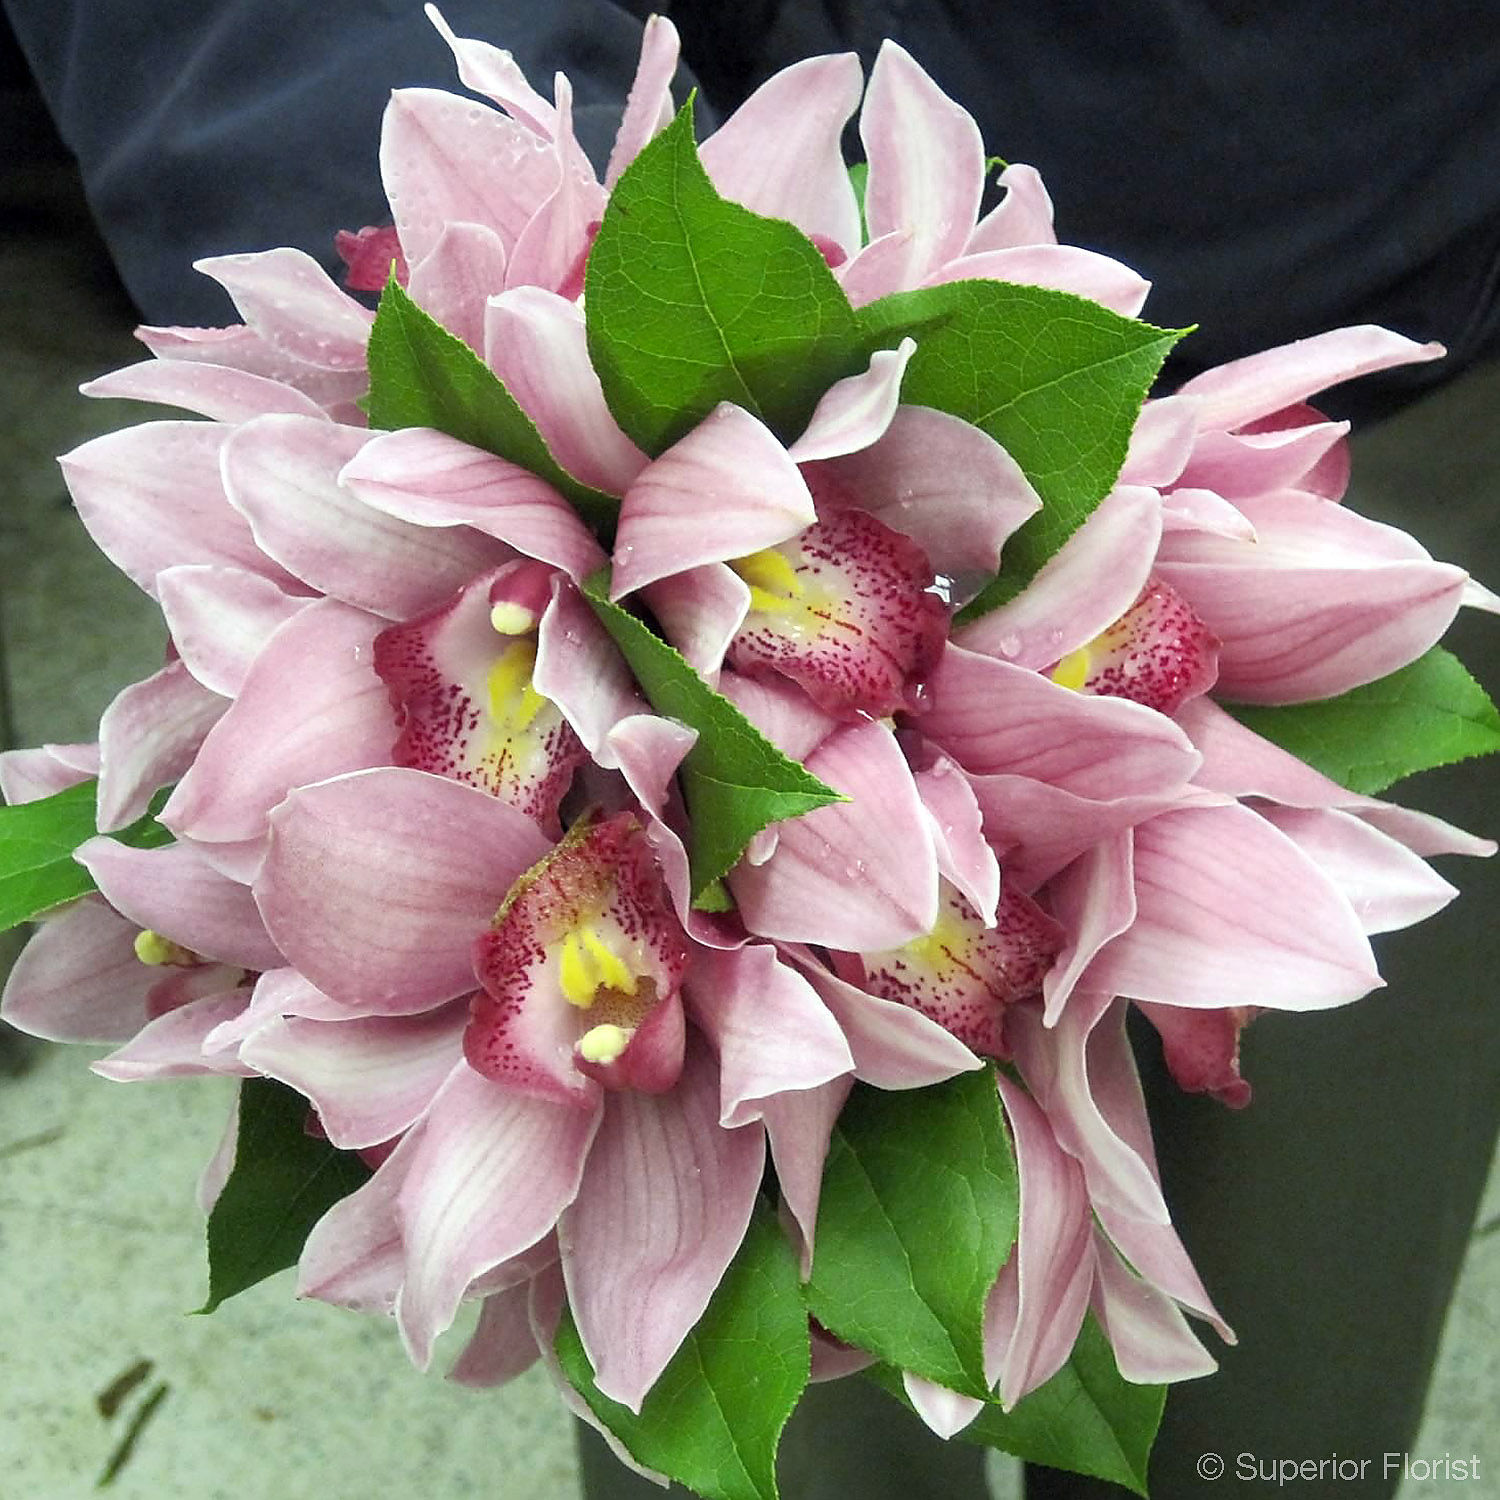 Superior Florist – Weddings – Personal Flowers: Hand tied bouquet of dark pink Cymbidium orchids and salal greens.